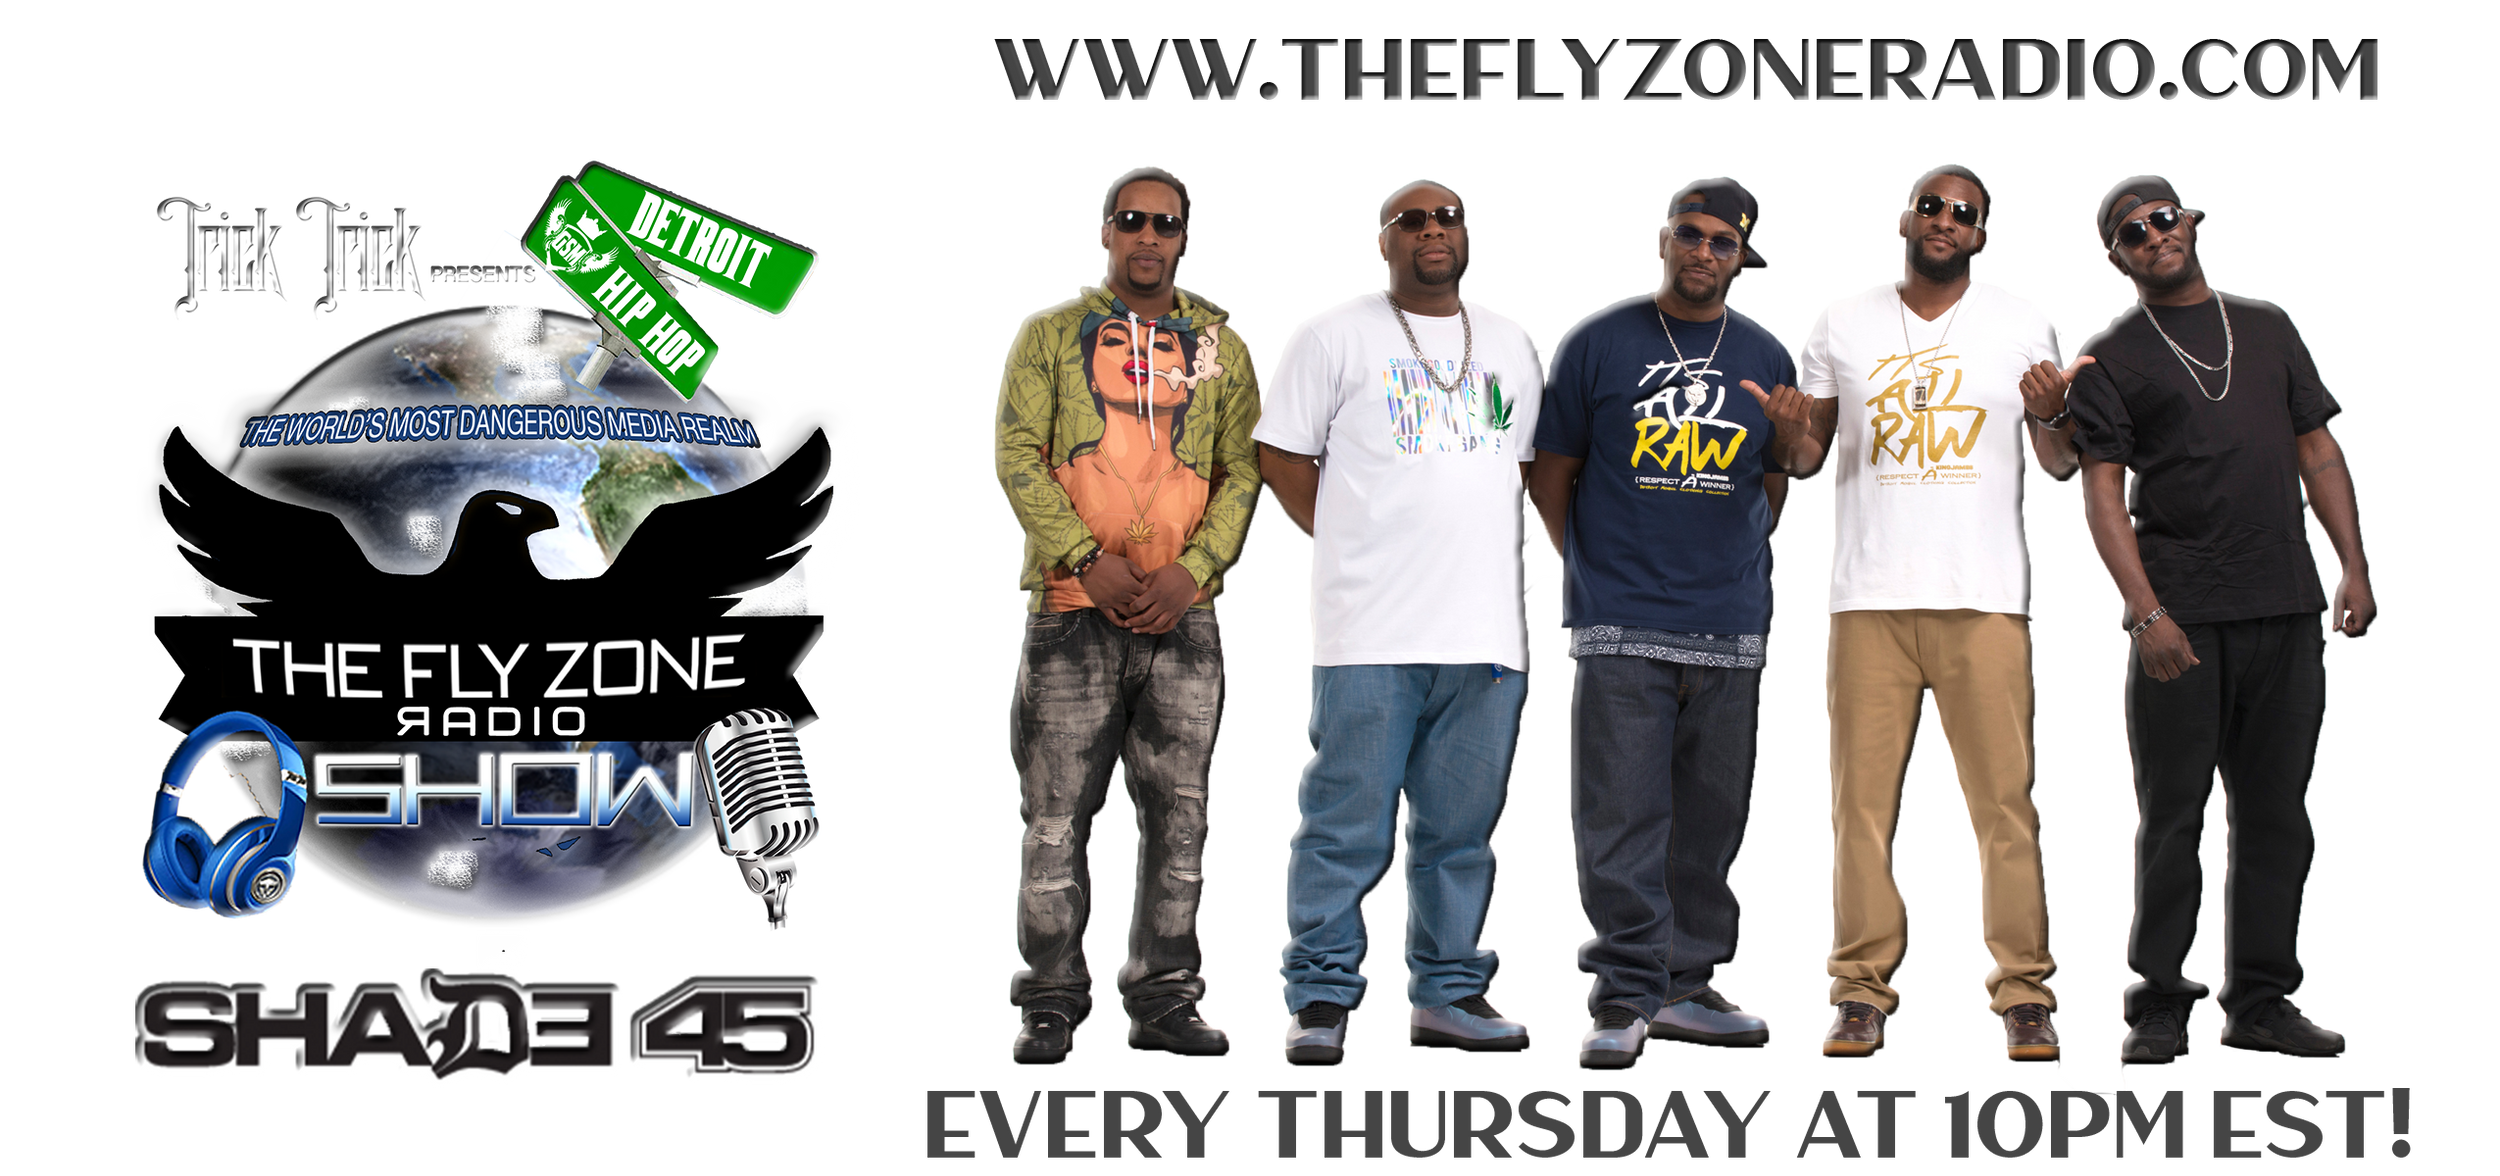 PERMISSION TO ENTER THE FLY ZONE RADIO DOT COM |DETROIT| TRICK TRICK|